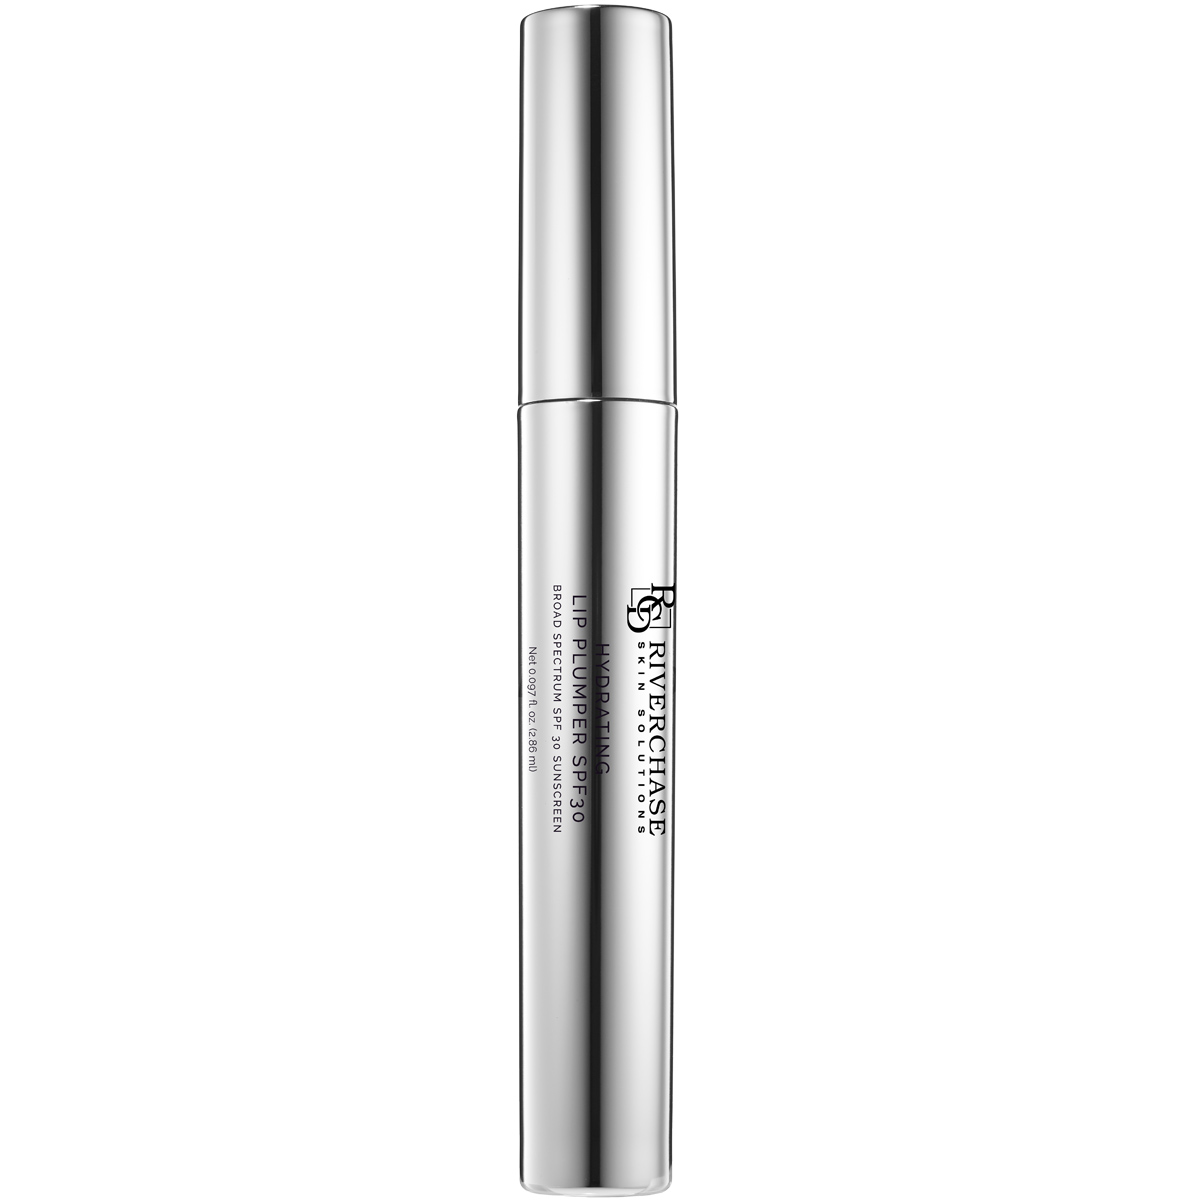 This multi-functional lip treatment helps to restore hydration and youthful volume.